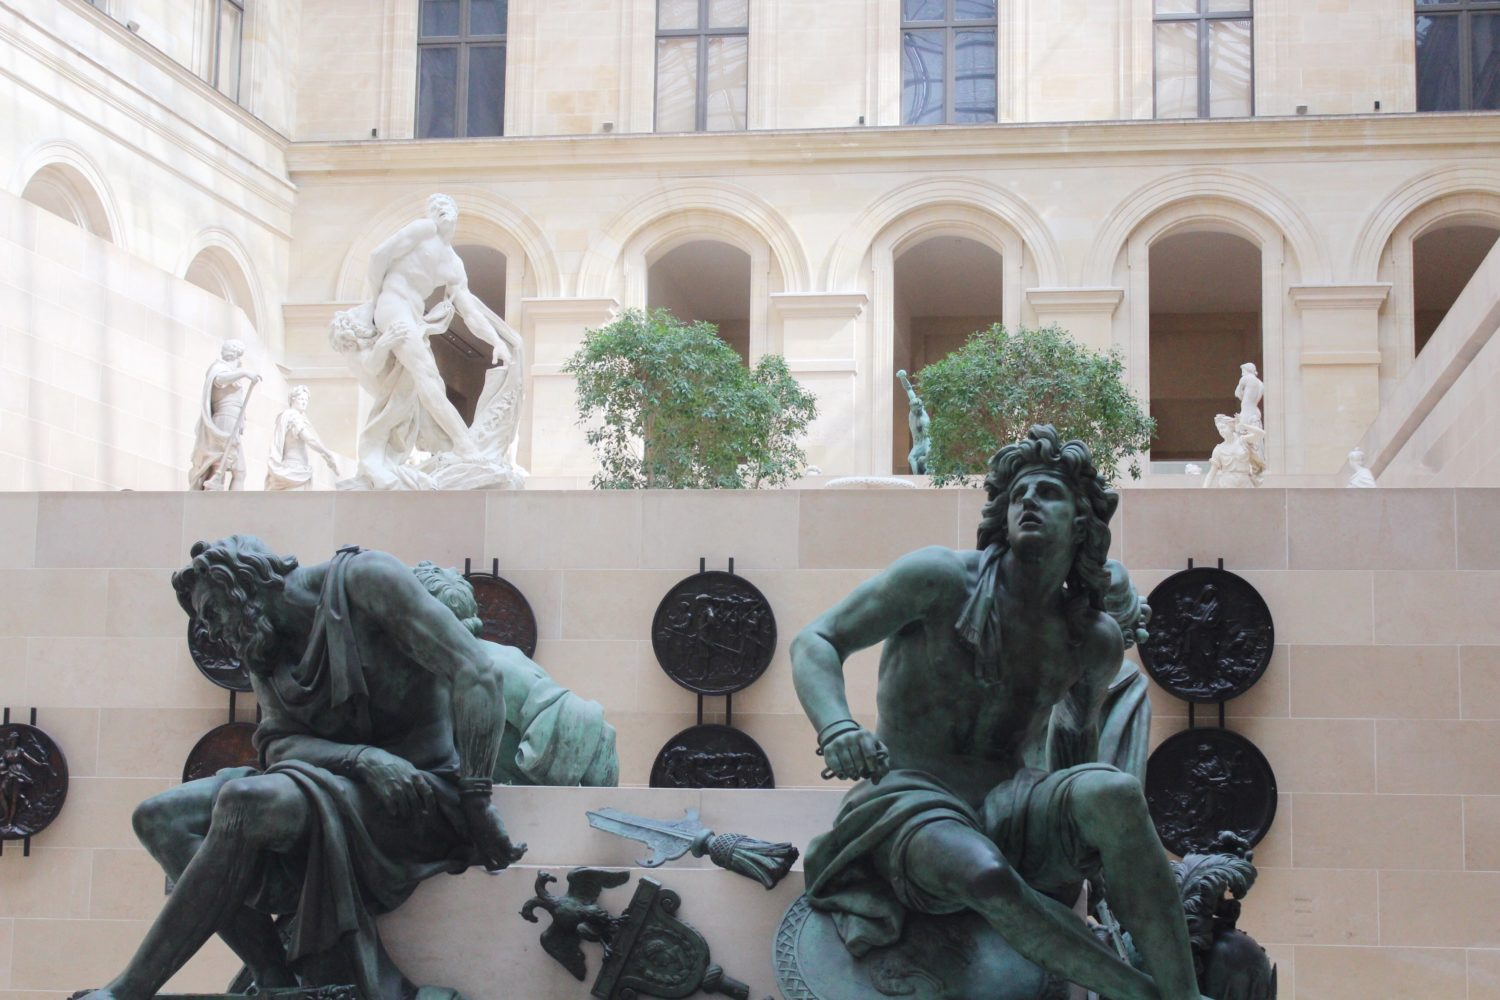 Sculpture Garden at The Louvre